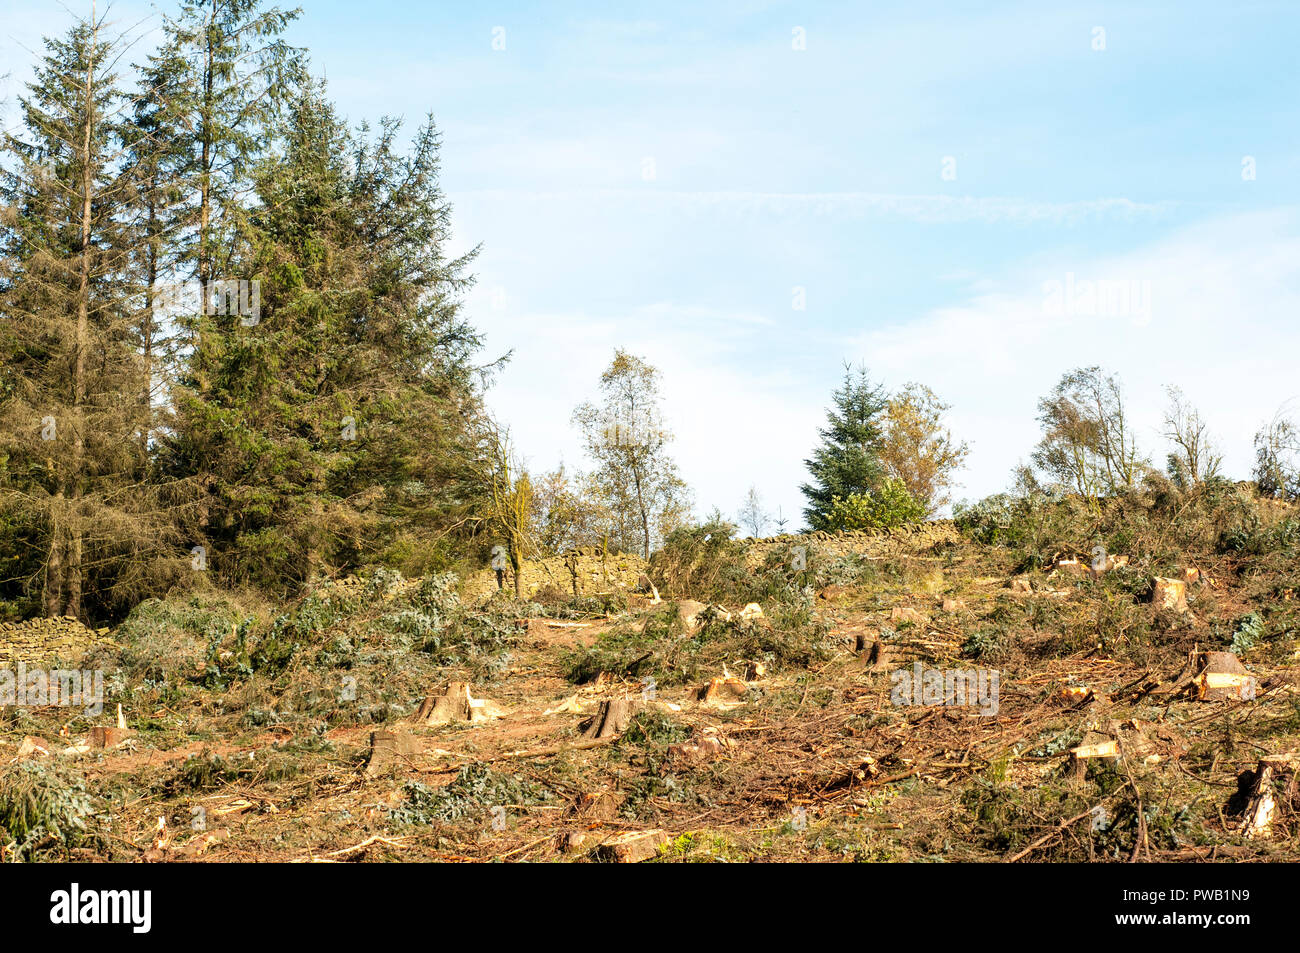 Felling of Pine Fir trees etc due to becoming unsafe through high winds over several winters. Beacon Fell Country Park Preston Lancashire England UK. - Stock Image